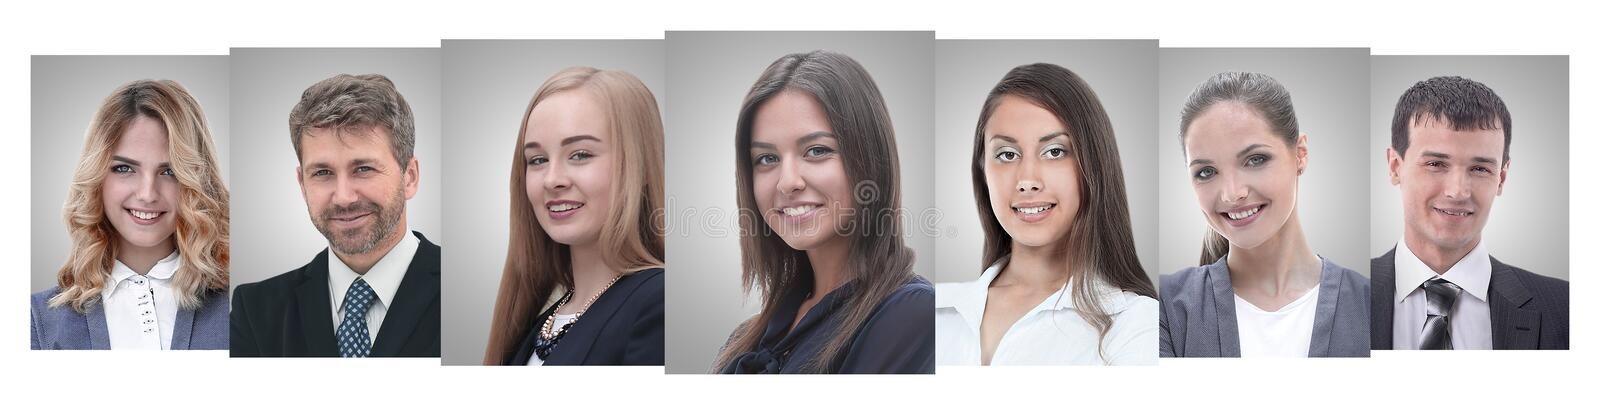 Panoramic collage of portraits of young entrepreneurs. royalty free stock photos